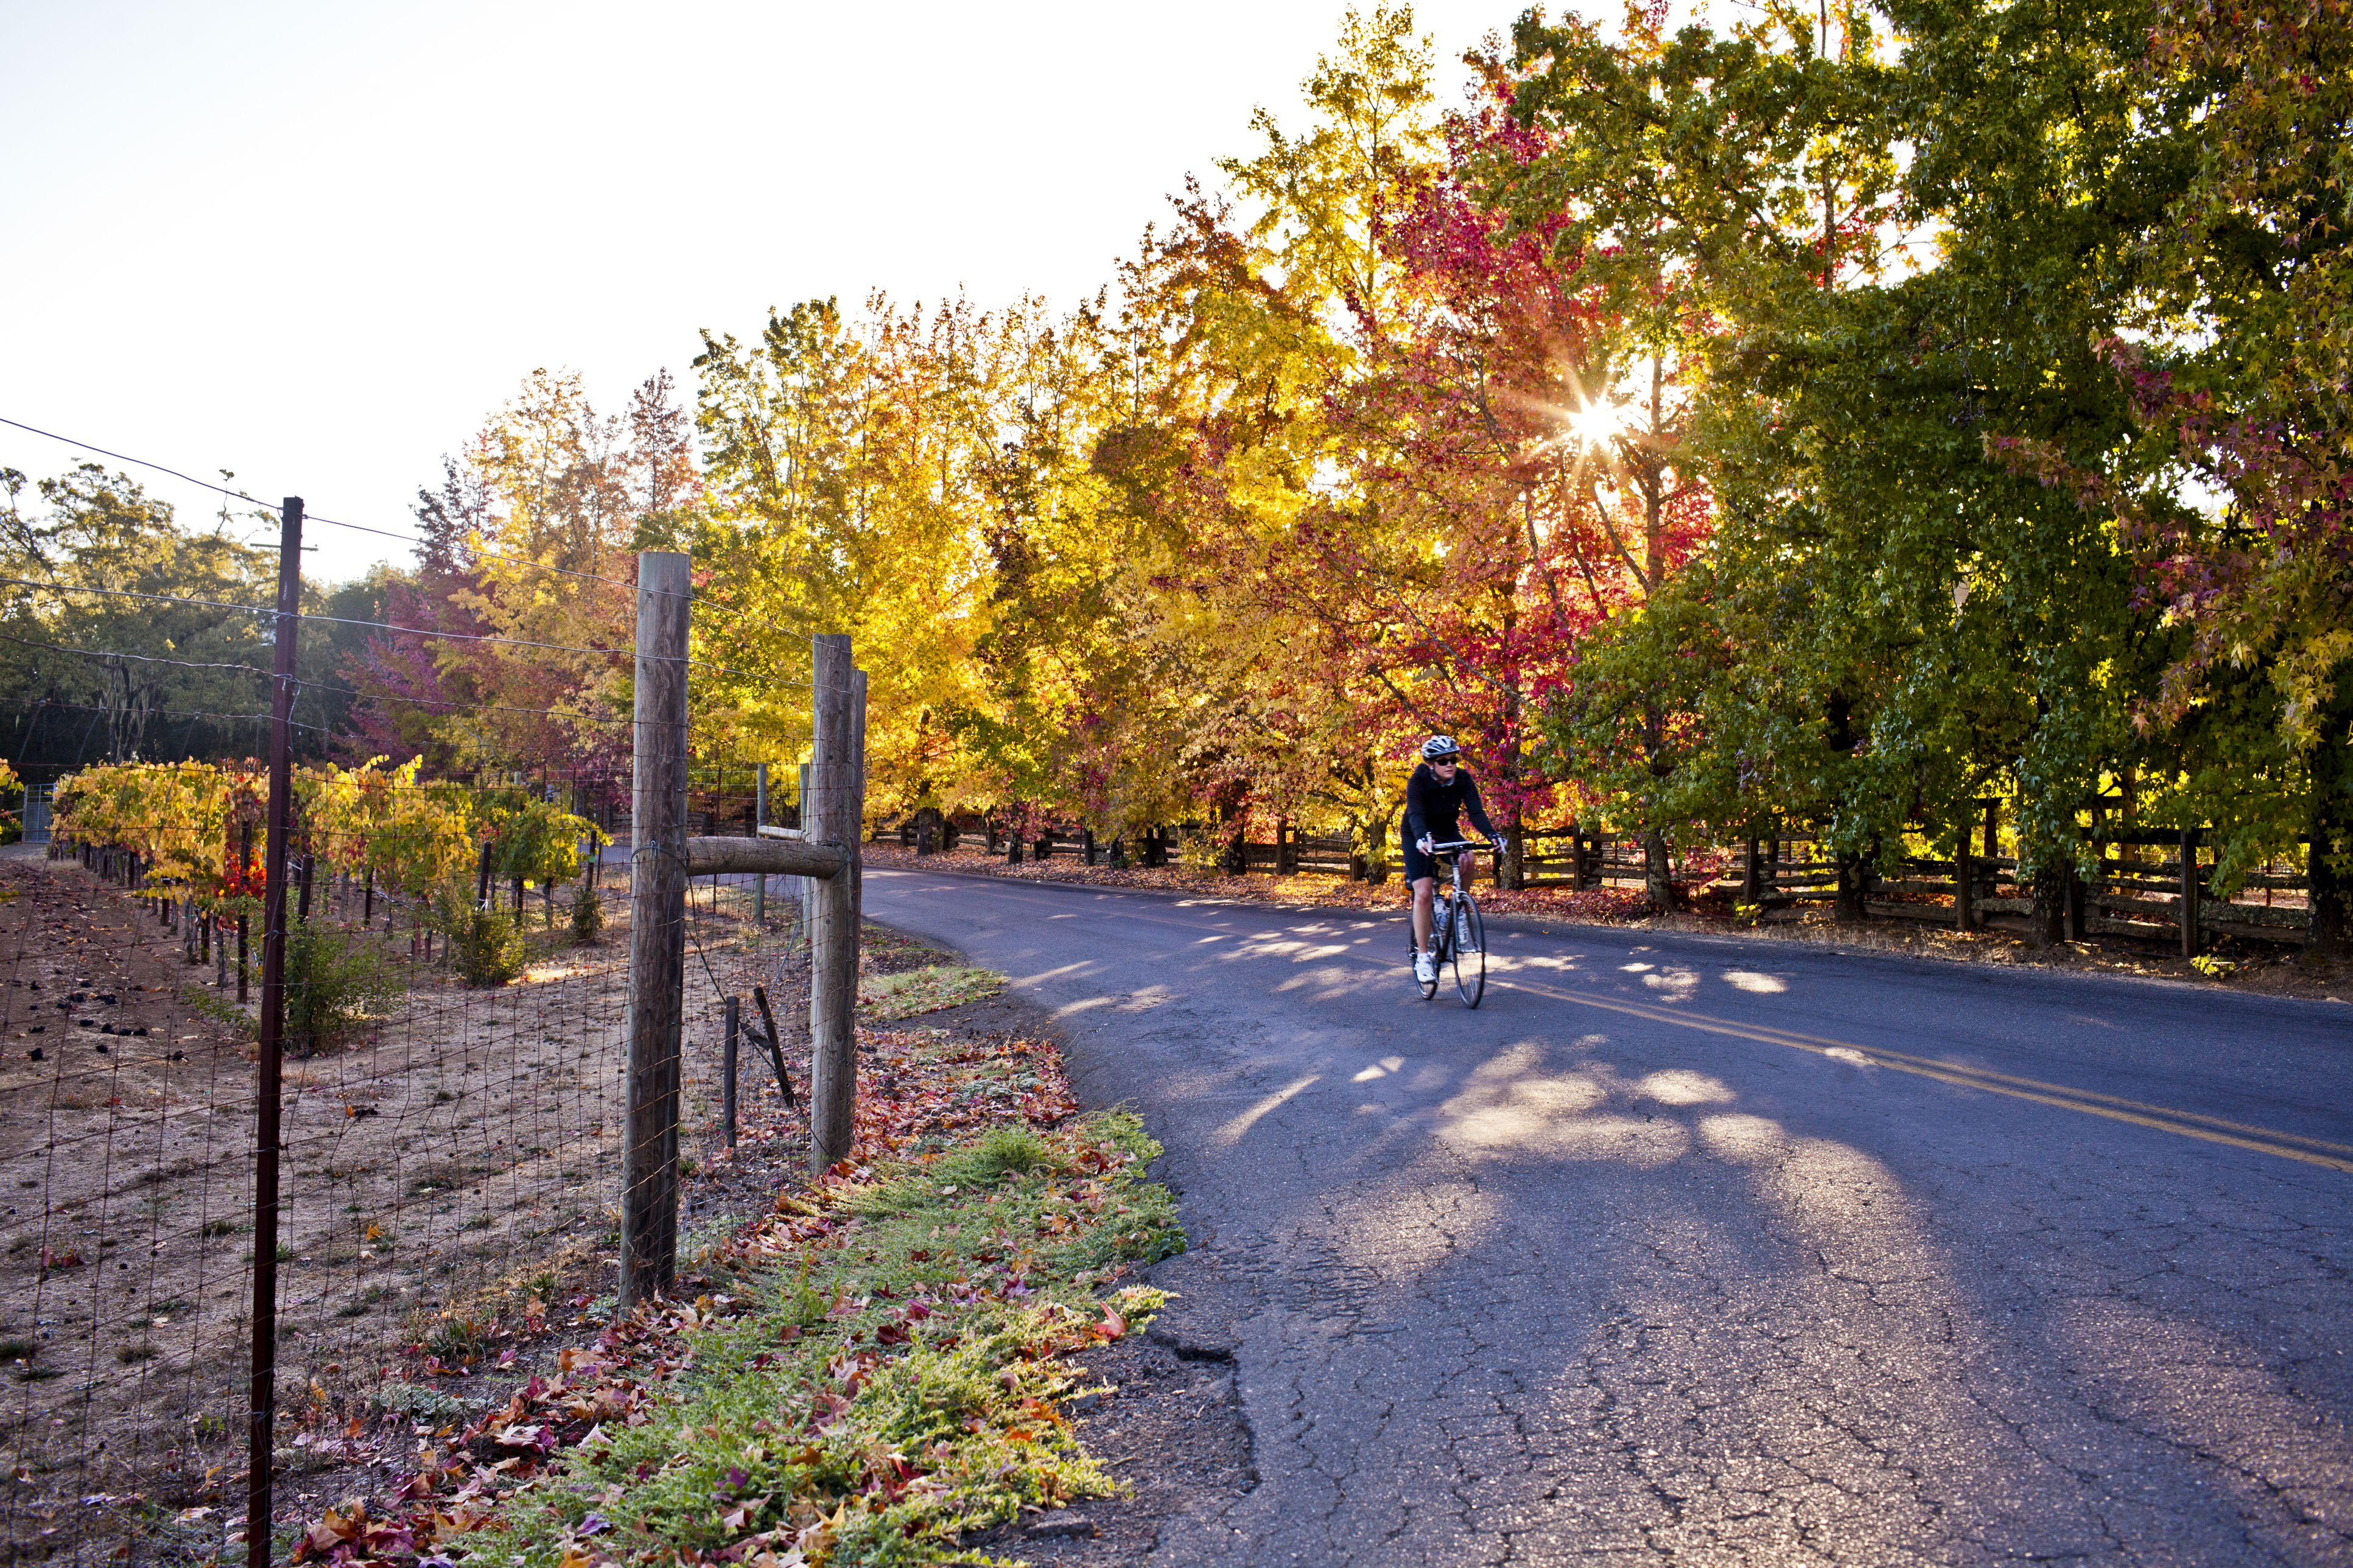 A women cycling on a rural road in Sonoma.